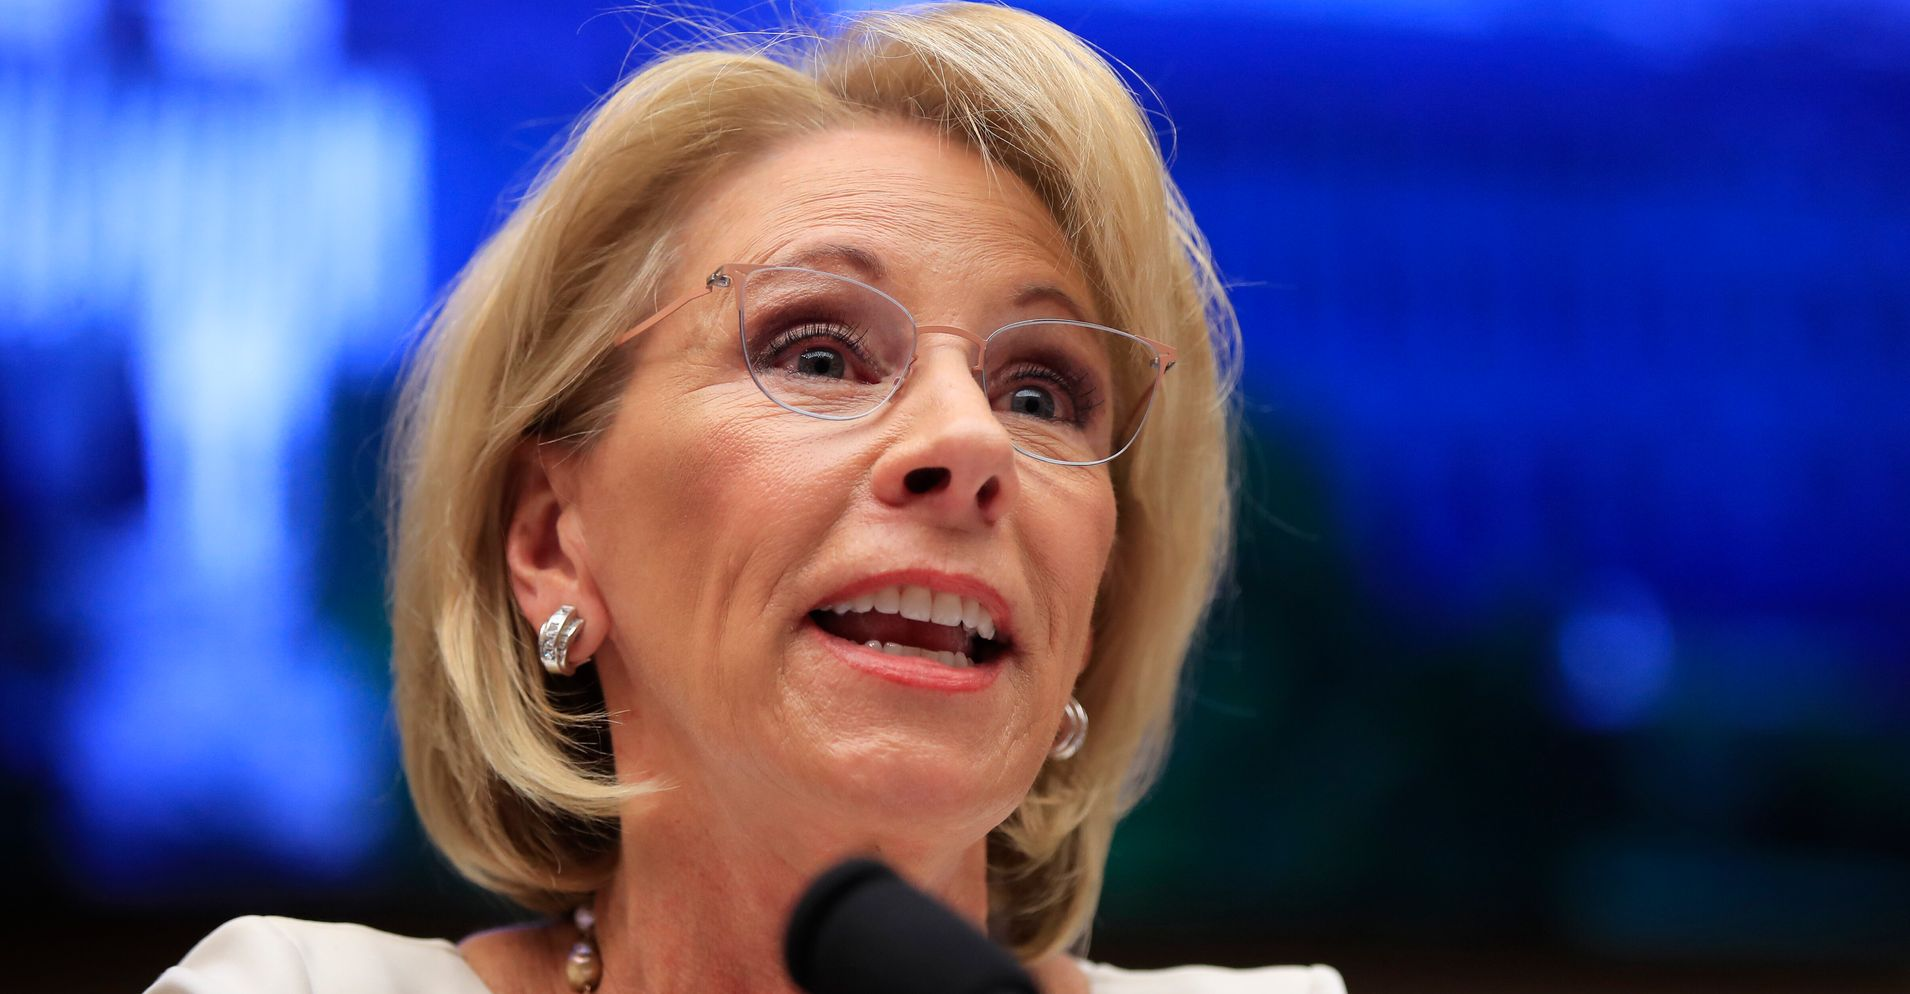 Democrats Demand Betsy Devos Reveal >> Betsy Devos I Don T Enjoy The Publicity That Comes With My Job